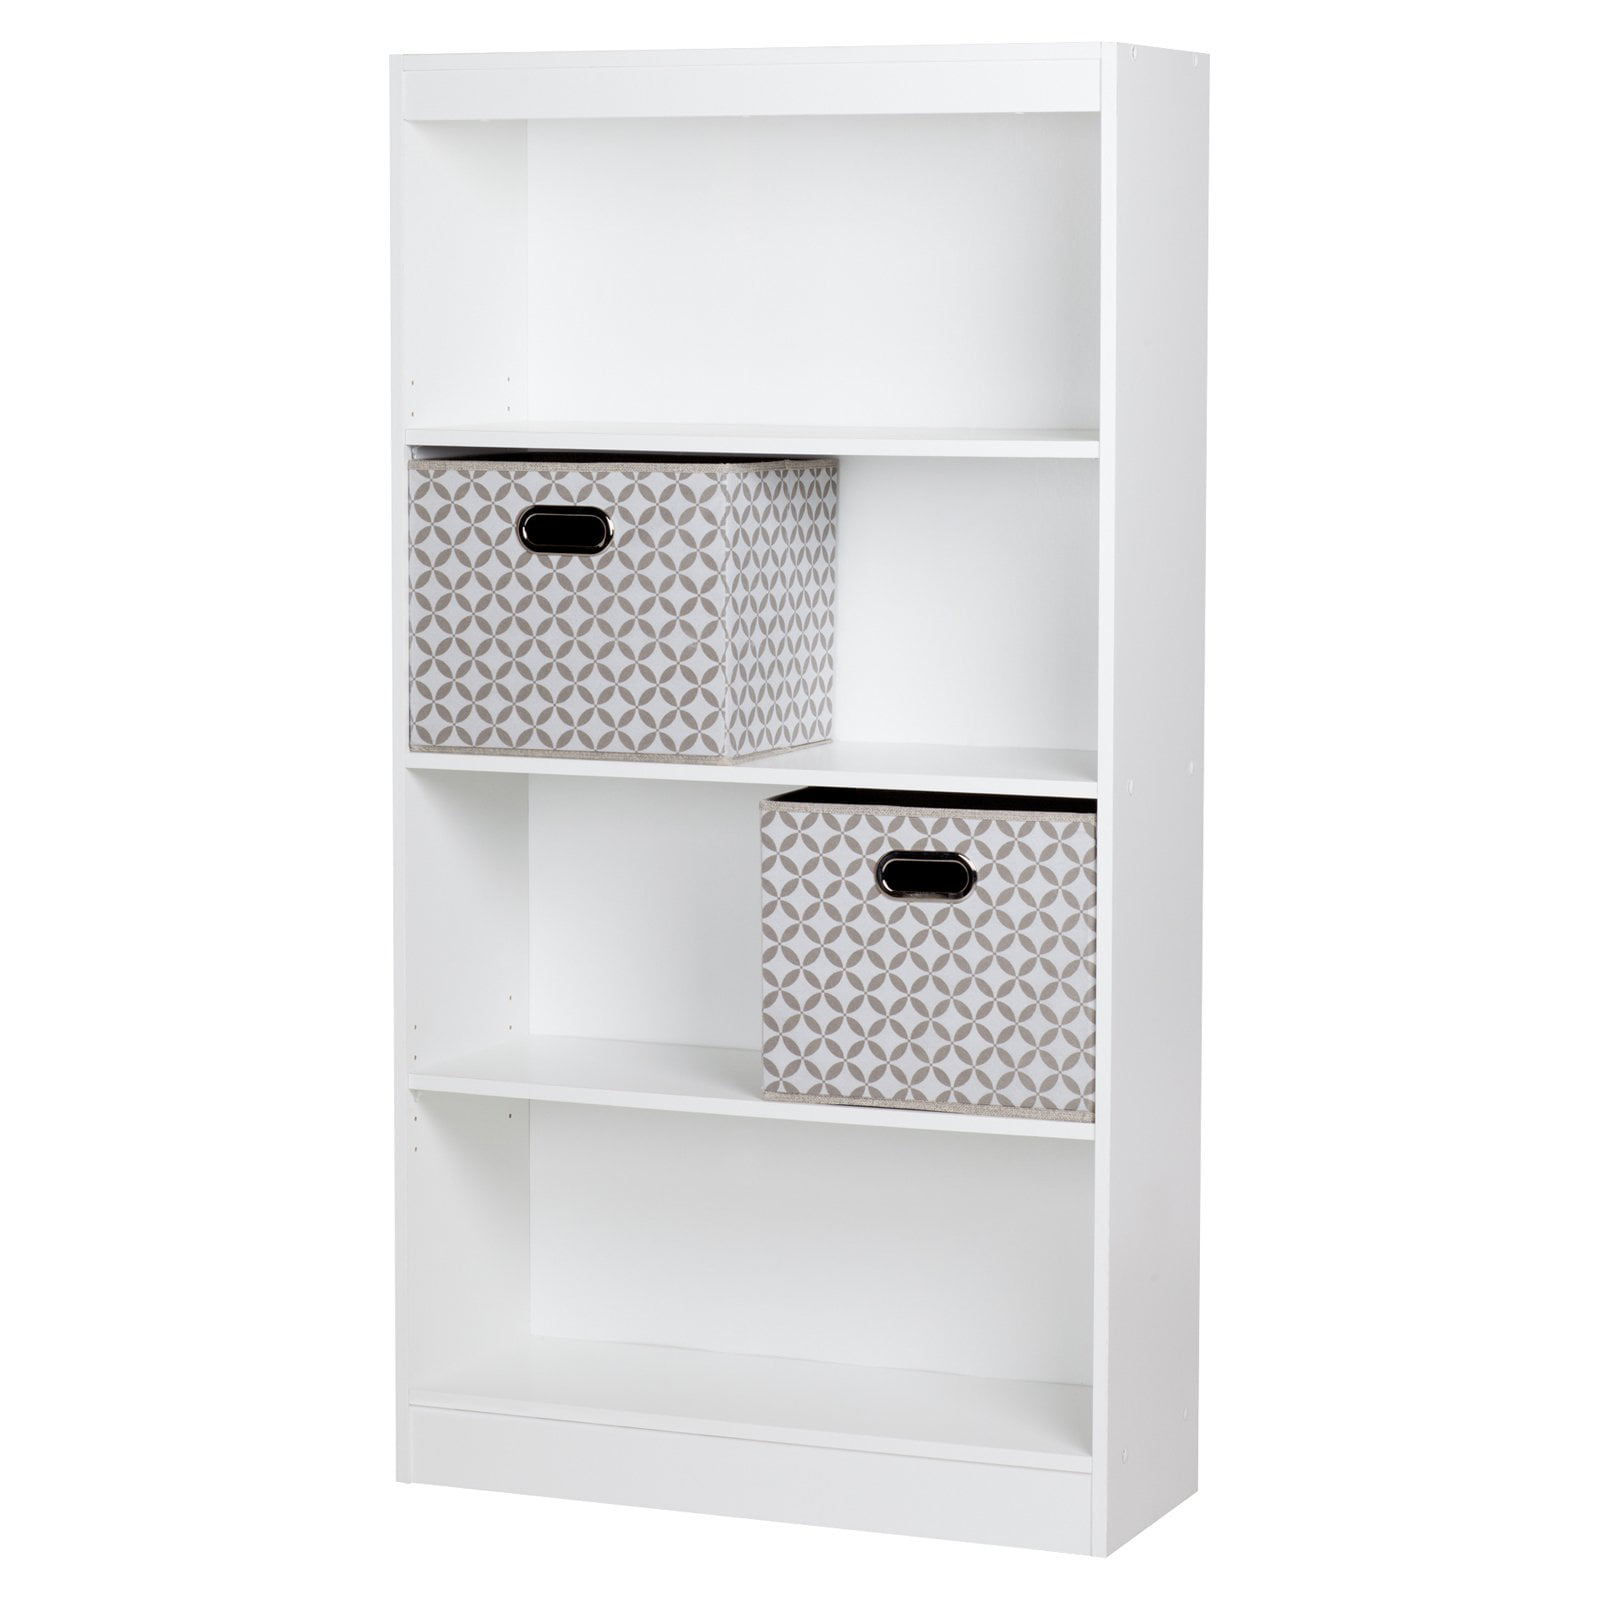 Axess 4 Shelf Bookcase with 2 Fabric Storage Baskets by South Shore by South Shore